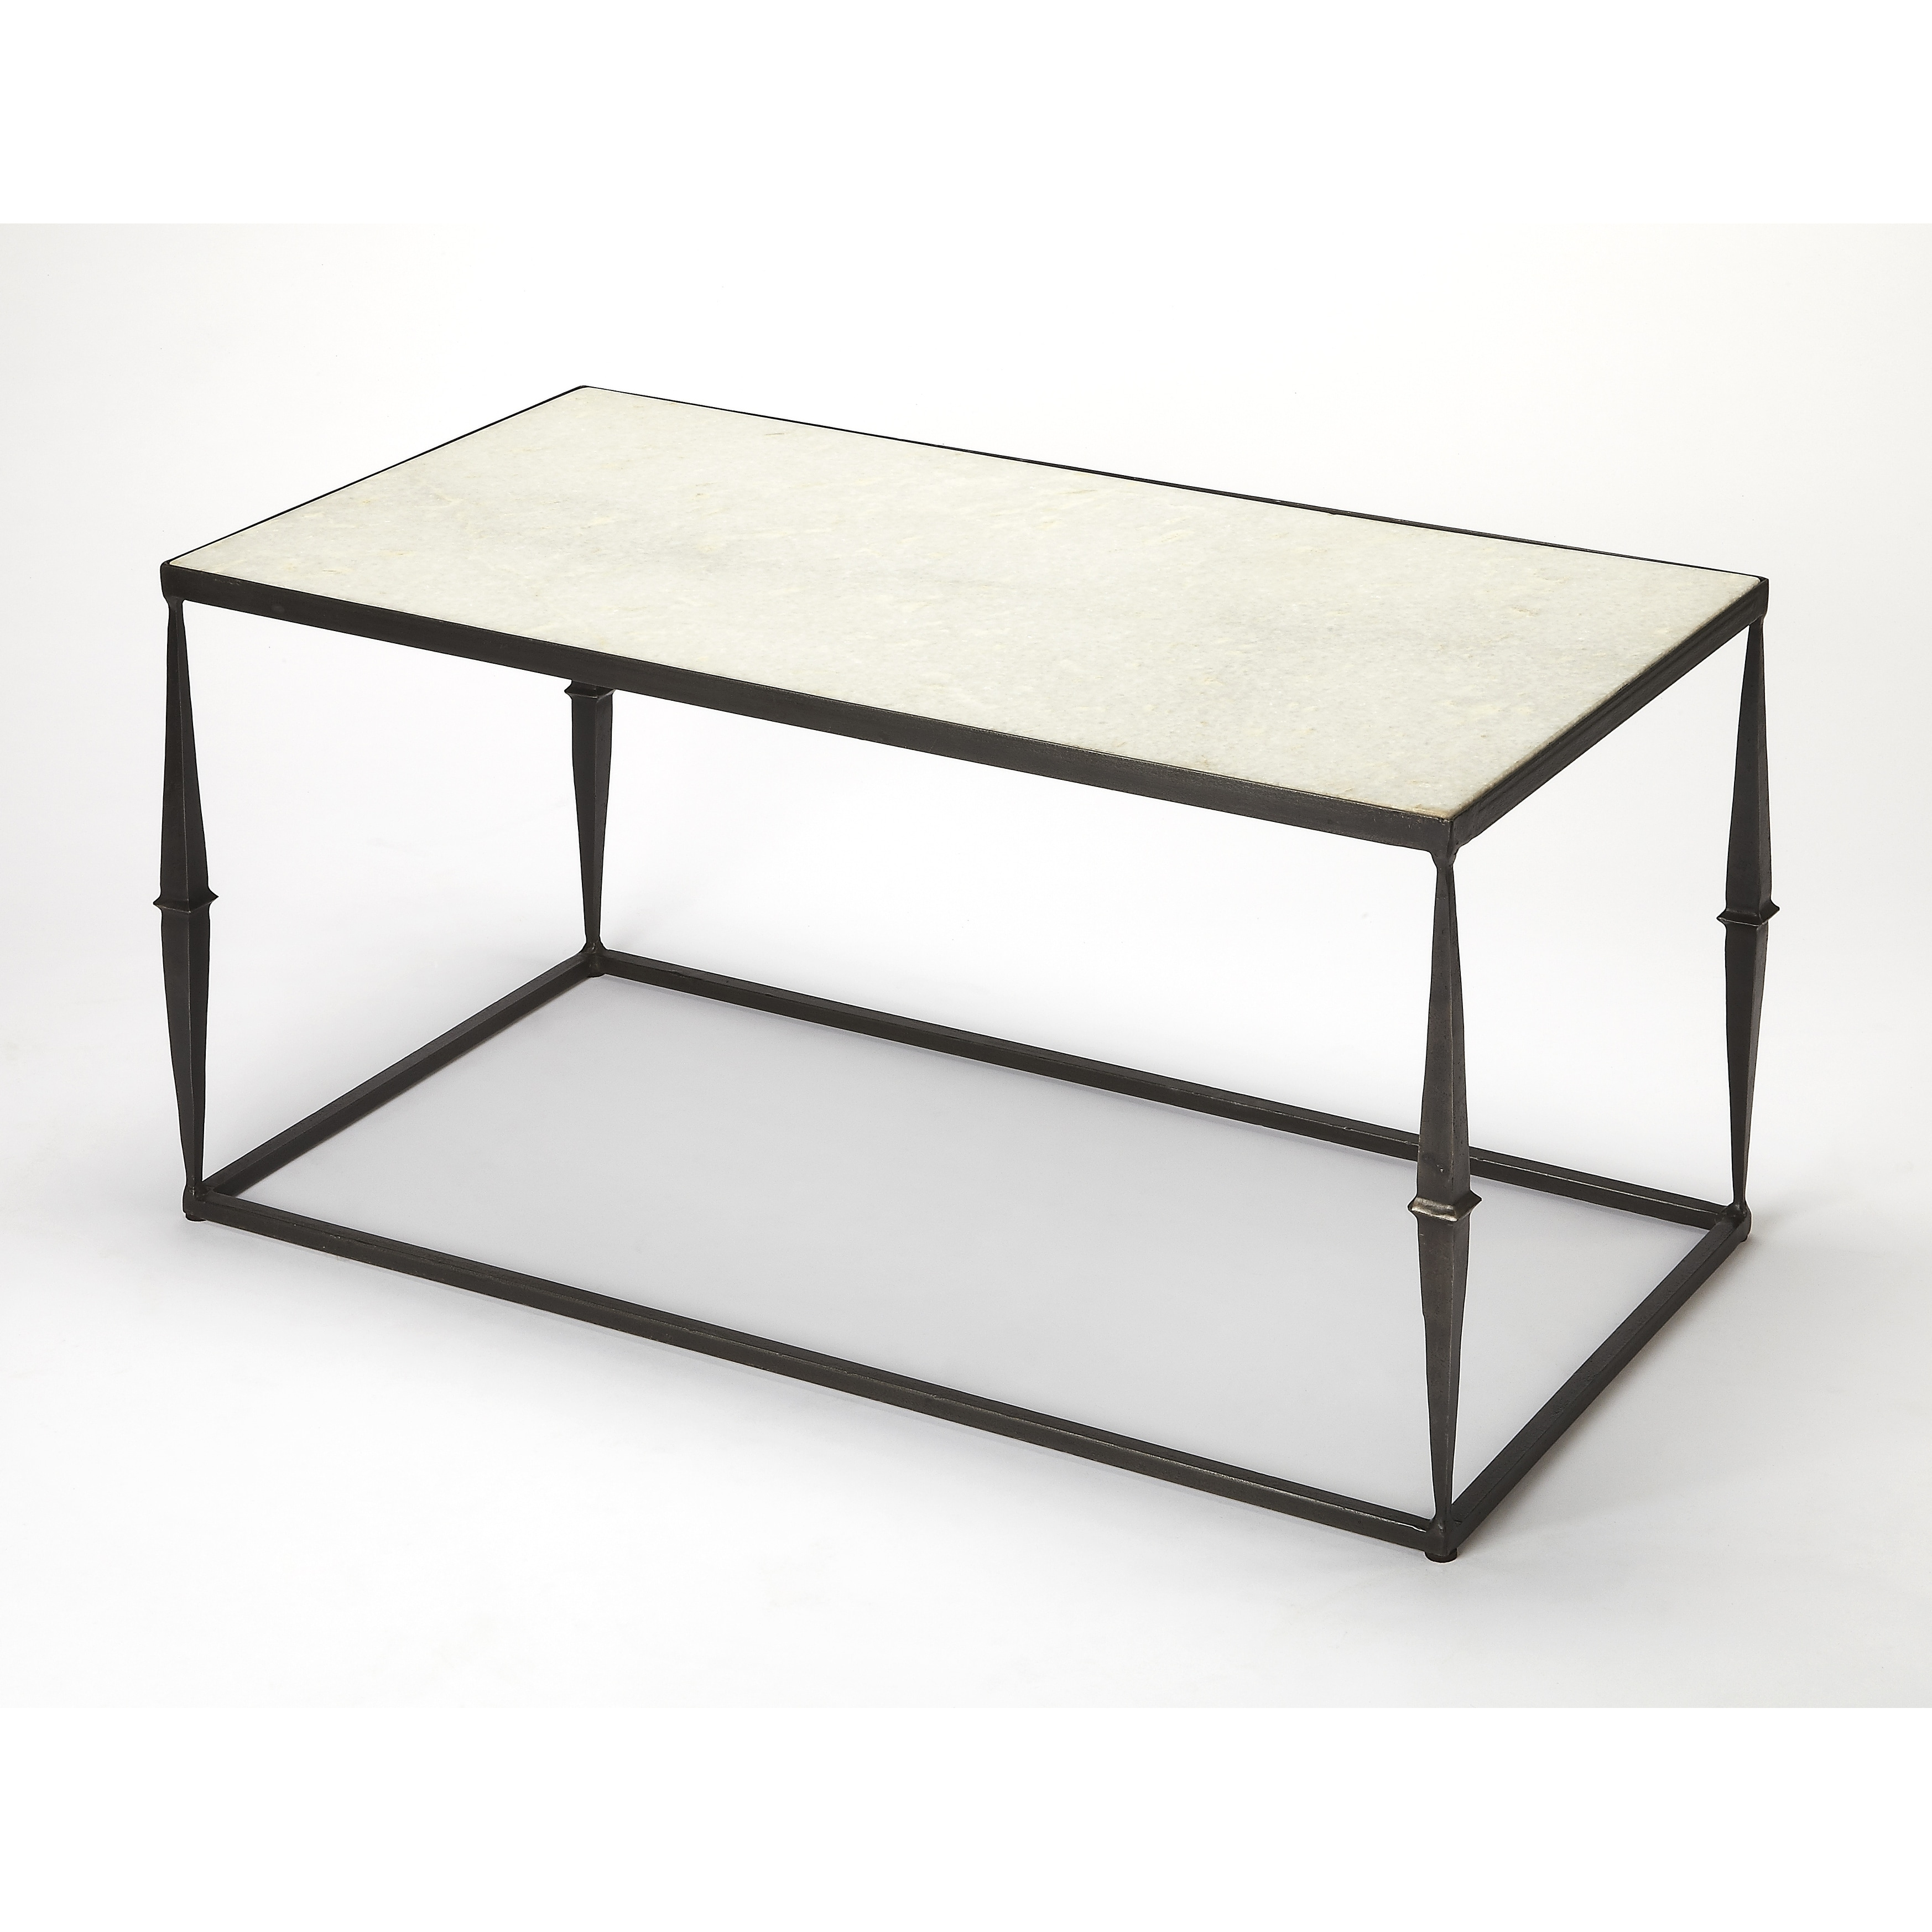 Butler Jacoby White Marble Coffee Table, Multi